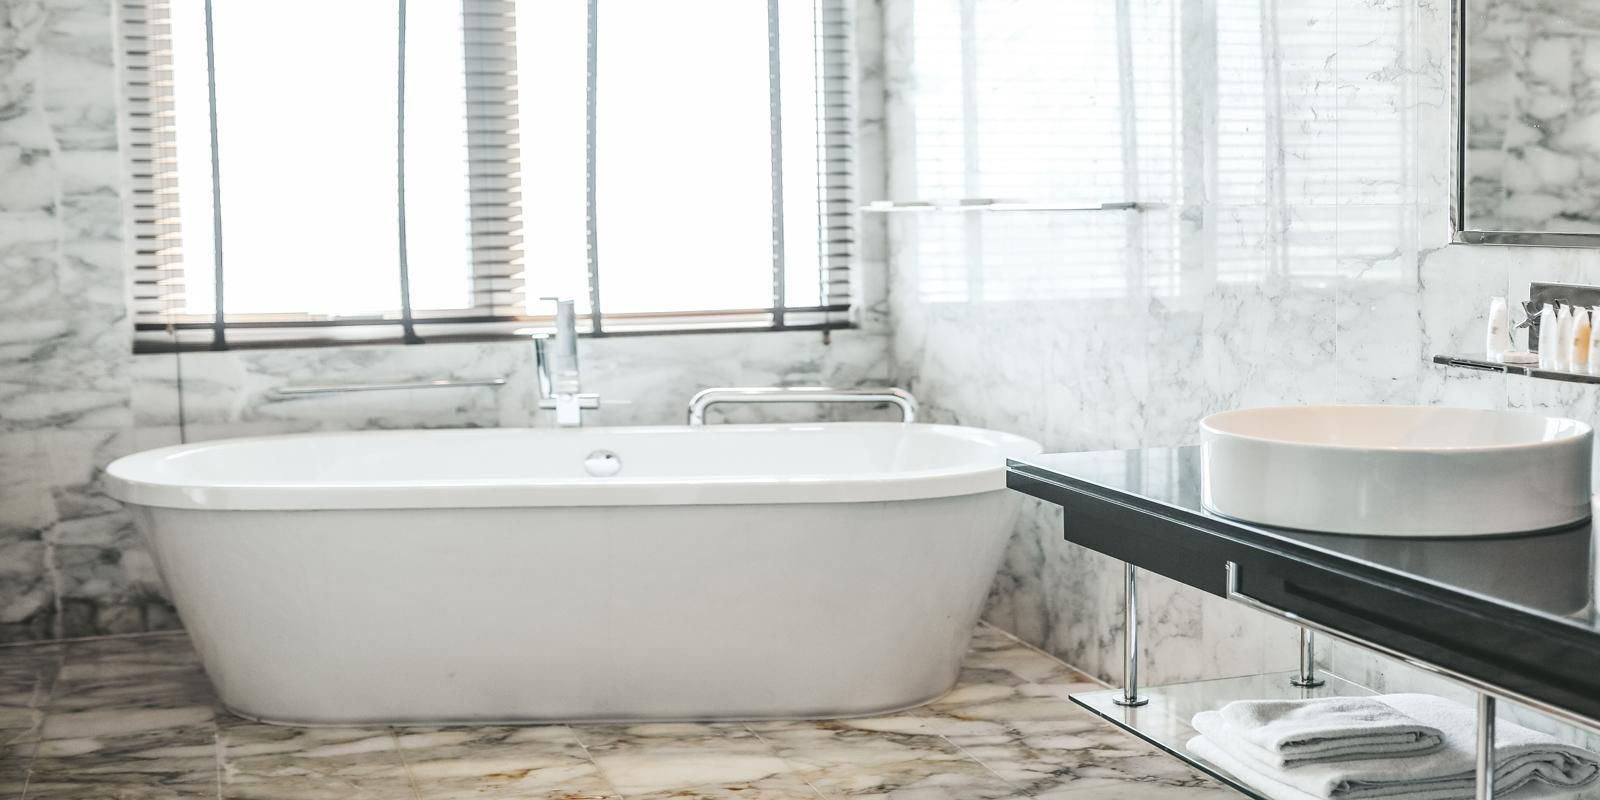 Take a soak in our luxurious stand-alone bathtub